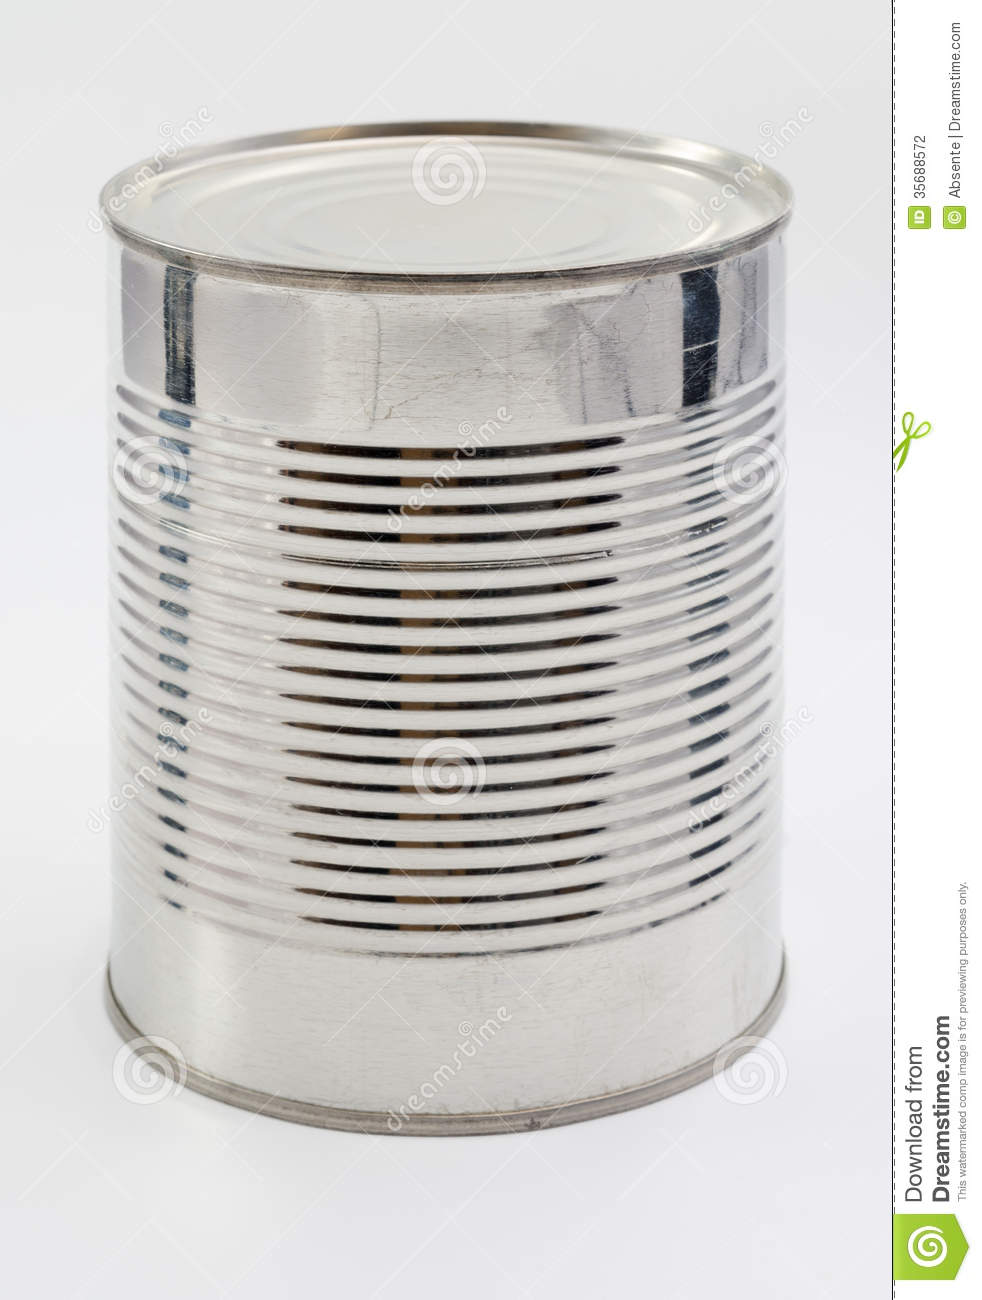 Unlabelled Cans Of Food